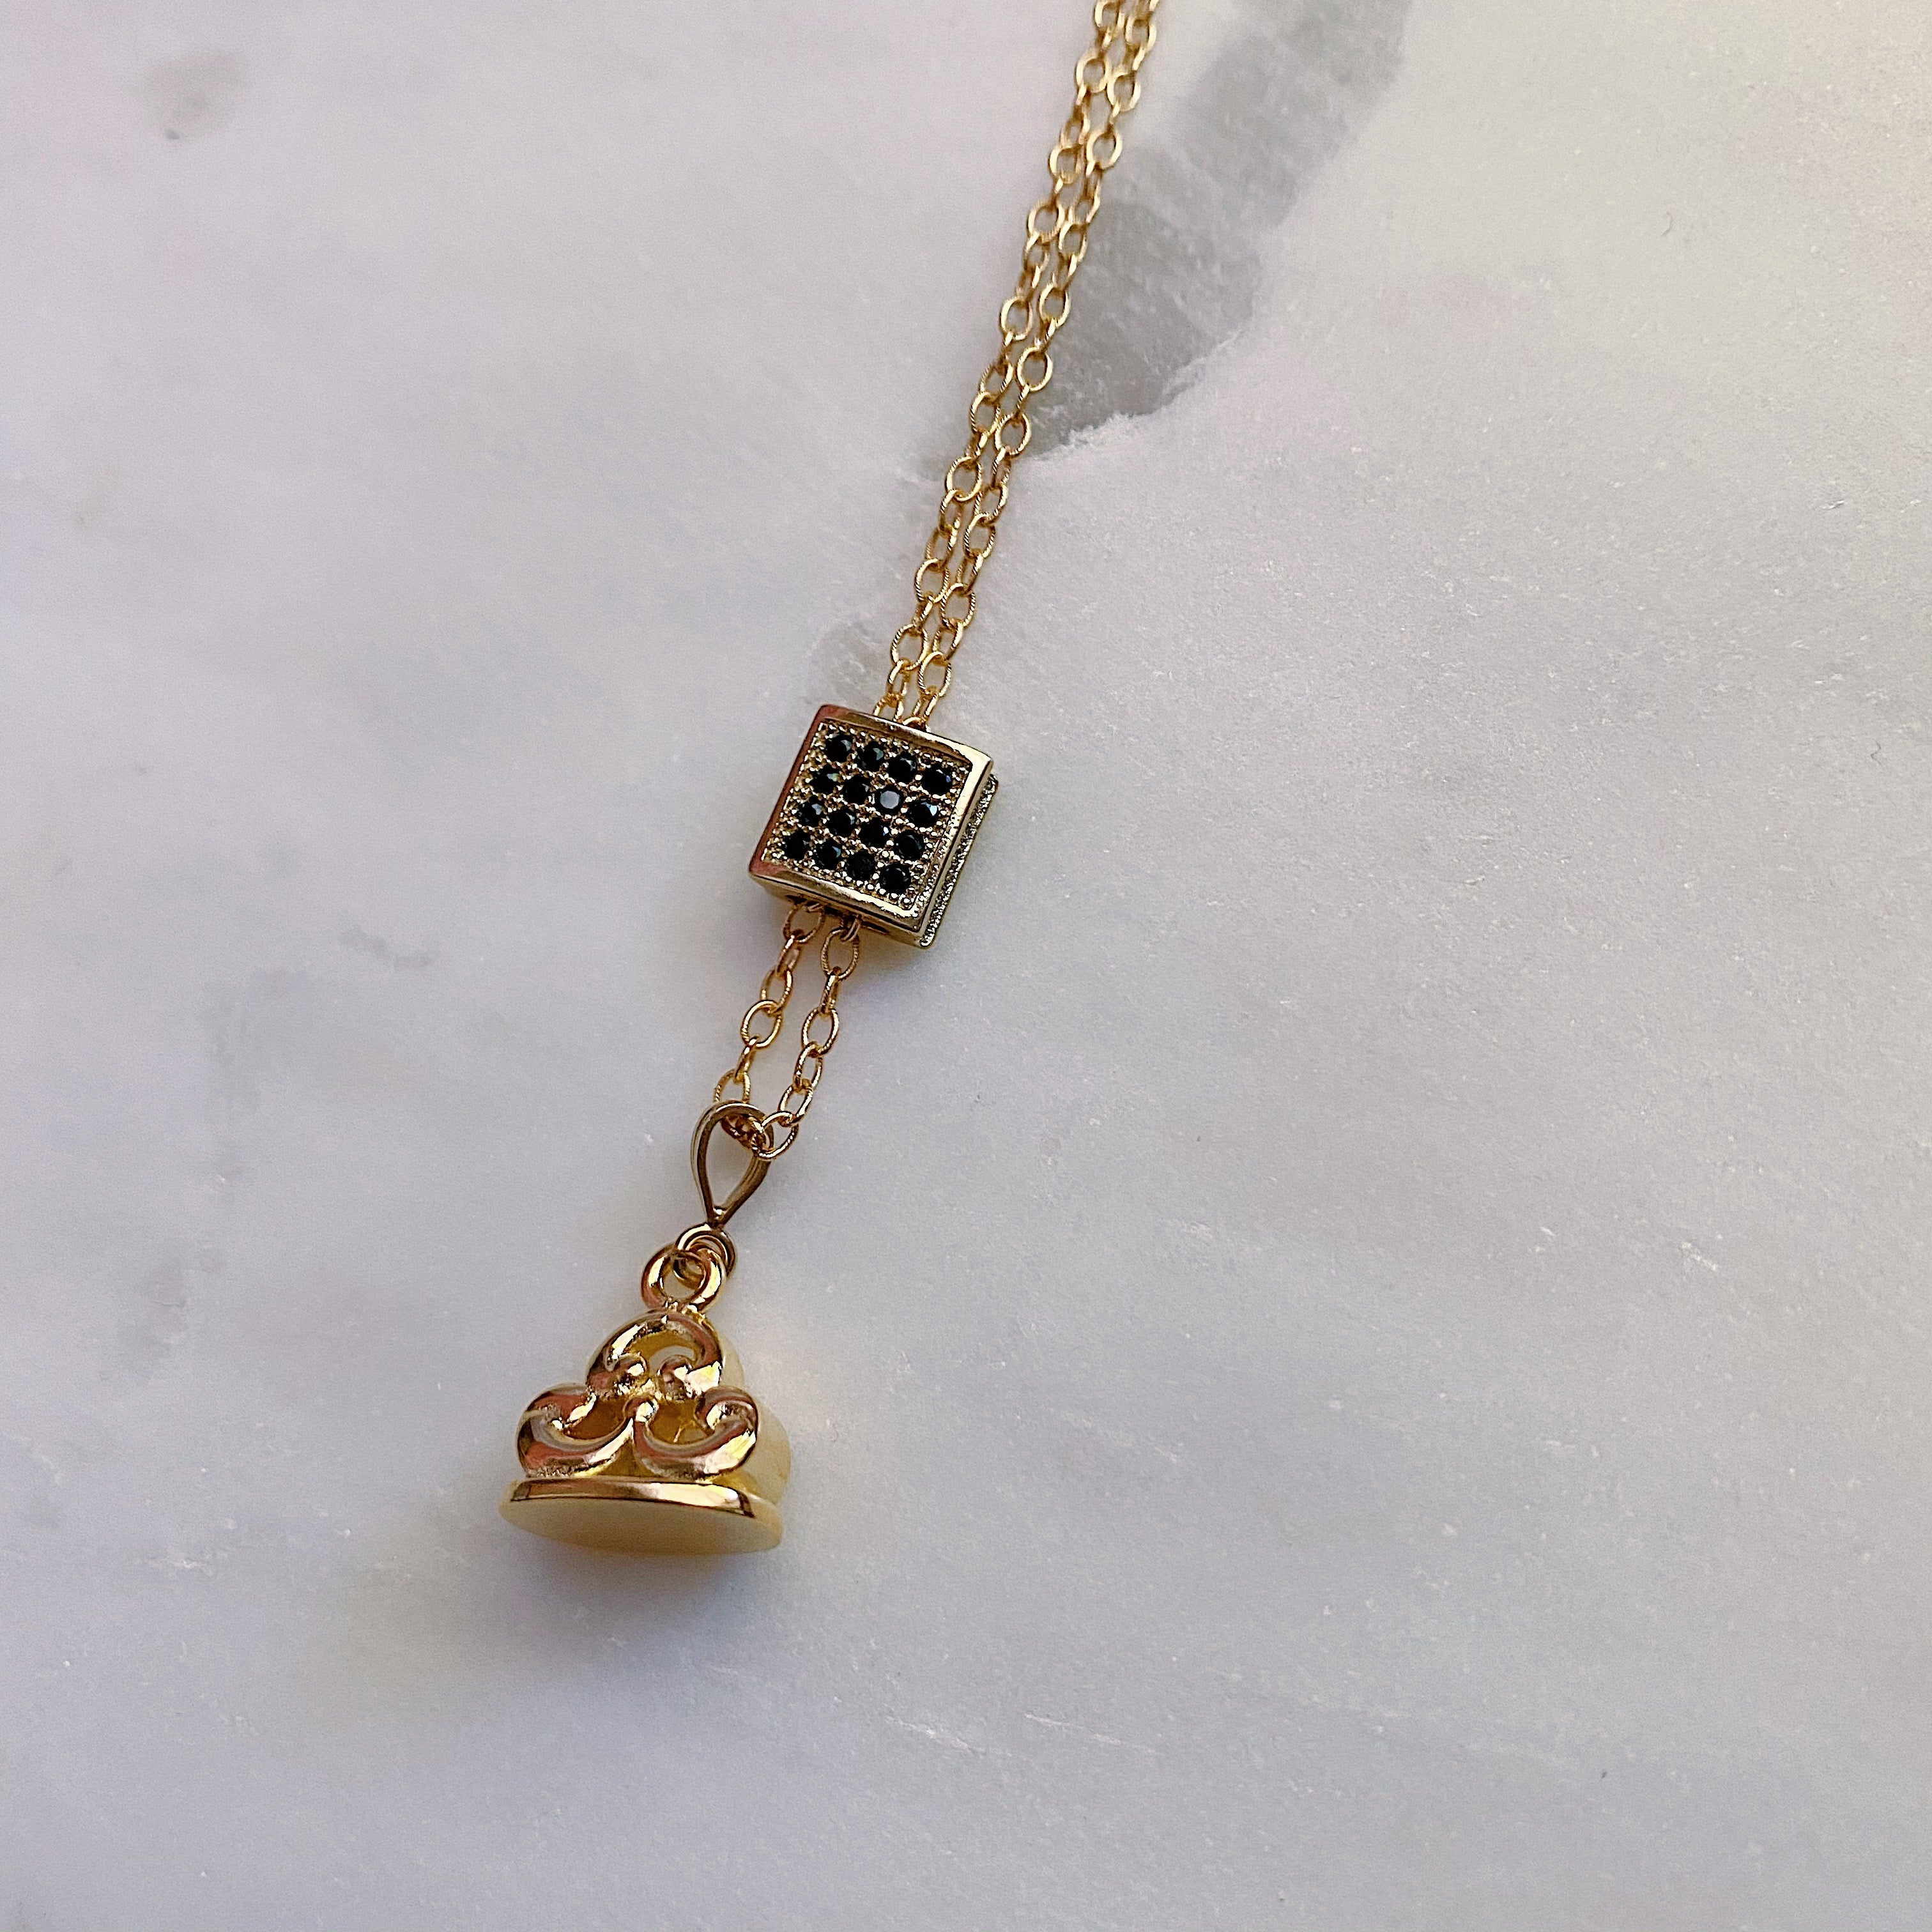 Mary Grace Slide and Fob Necklace